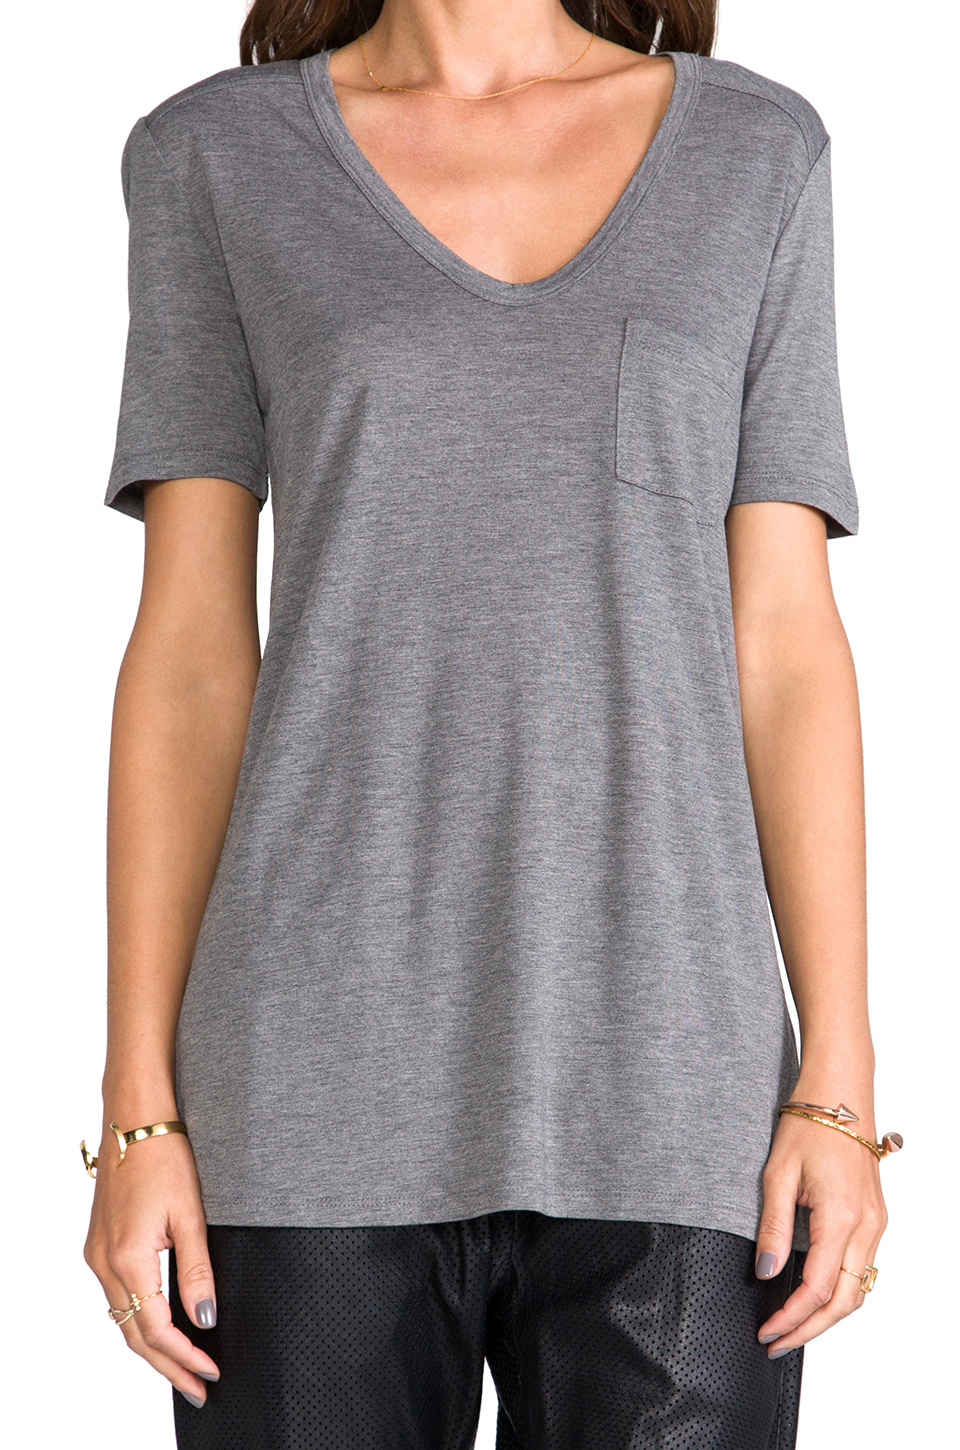 T by Alexander Wang Classic T with Pocket in Heather Grey